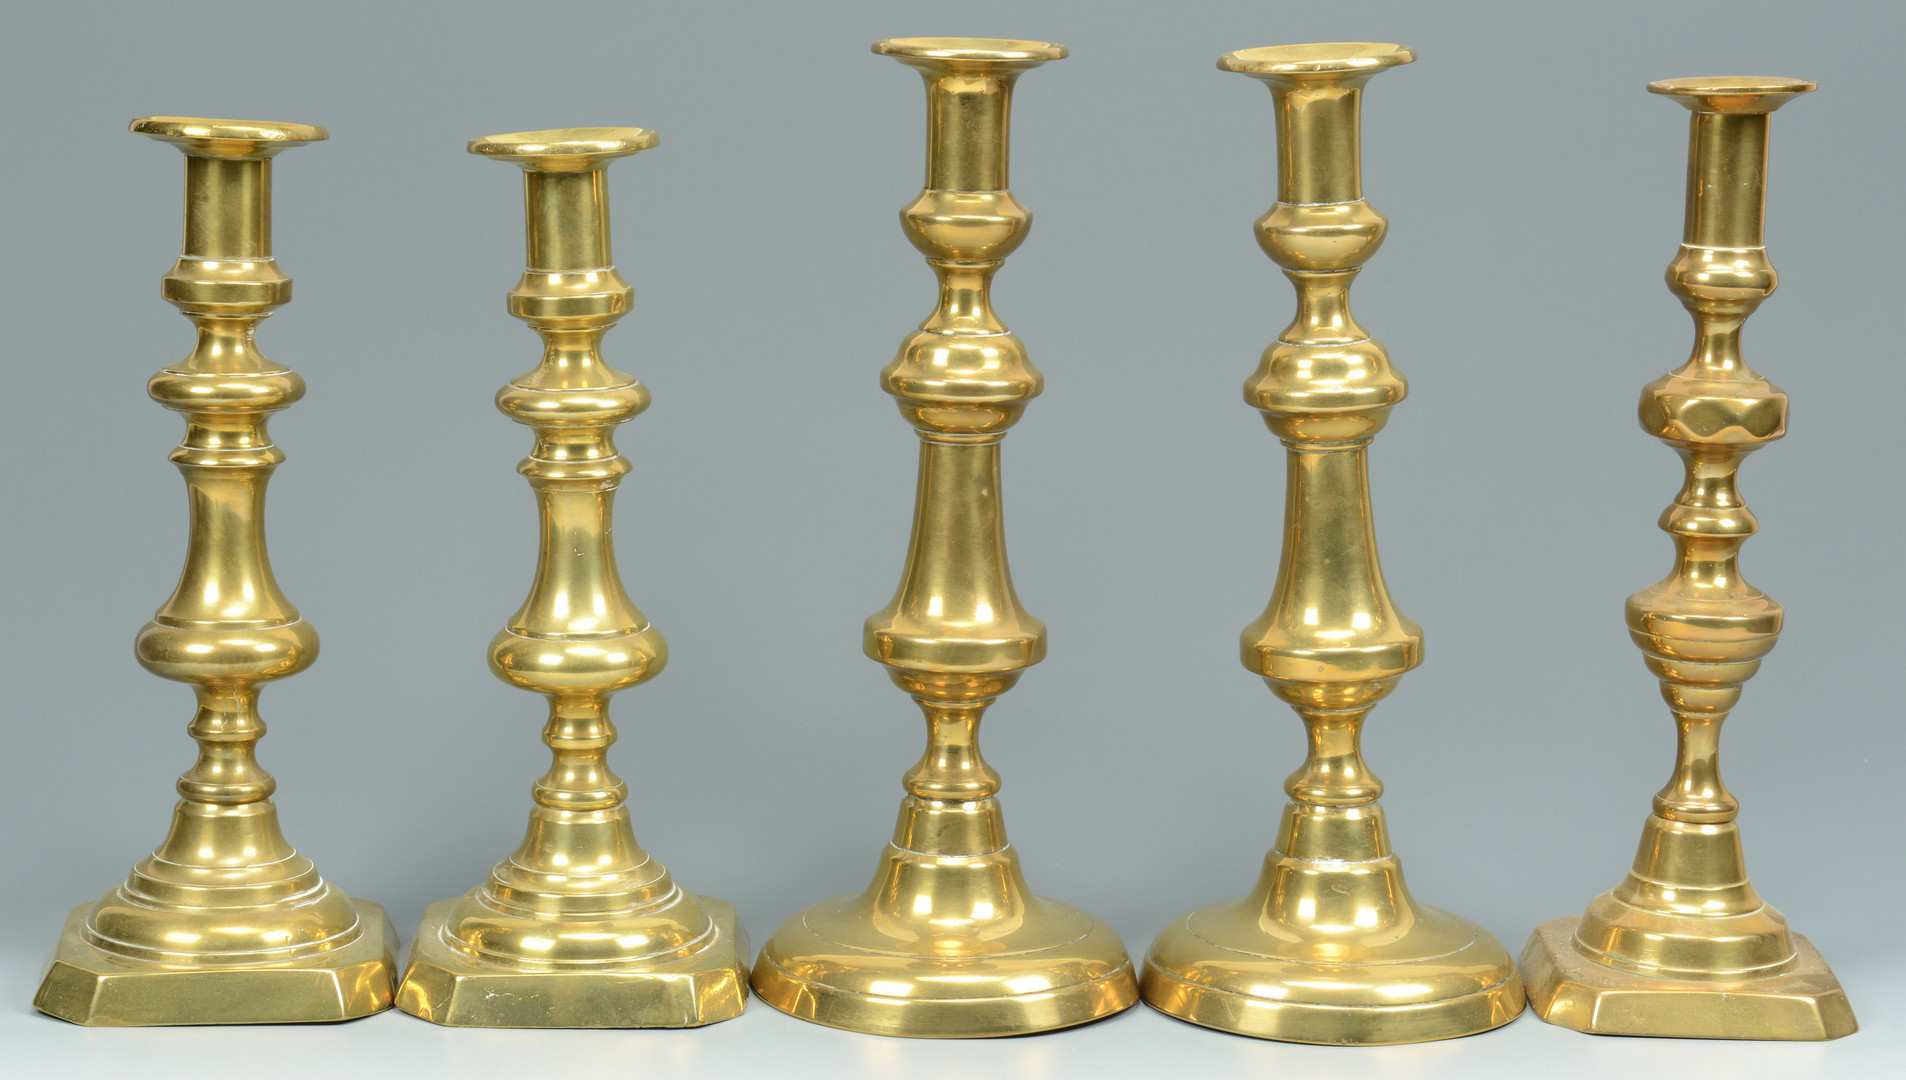 Lot 705: Grouping of Brass Candlesticks, 15 total